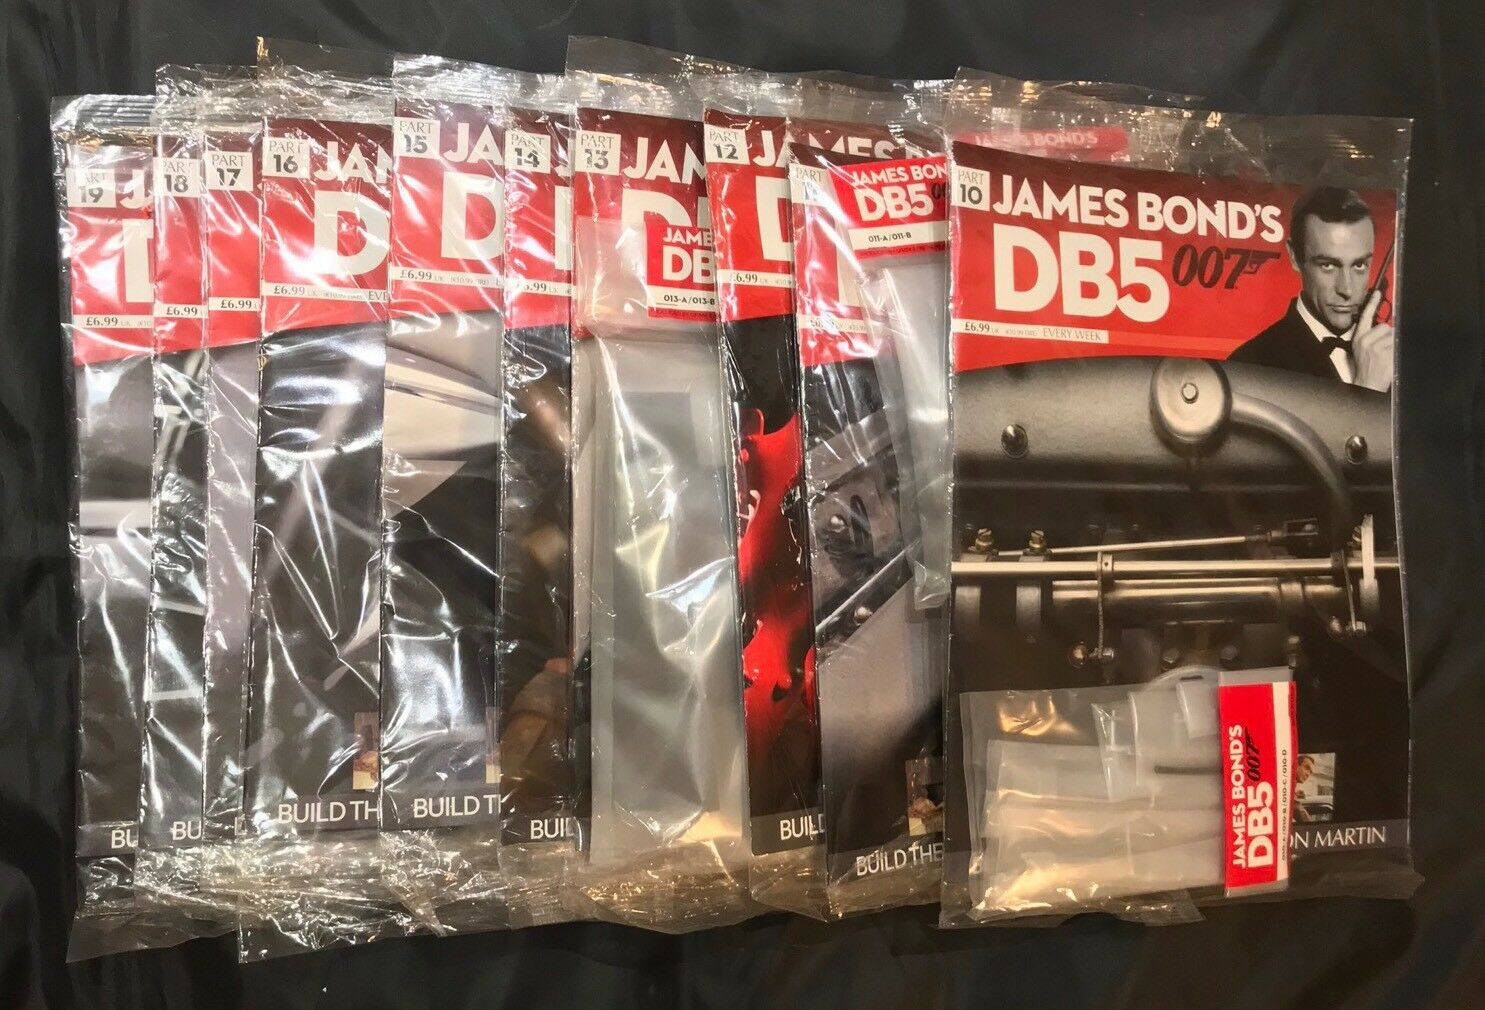 BUILD YOUR OWN JAMES BOND 007 1 8 ASTON MARTIN DB5 Mags & Parts 10-19